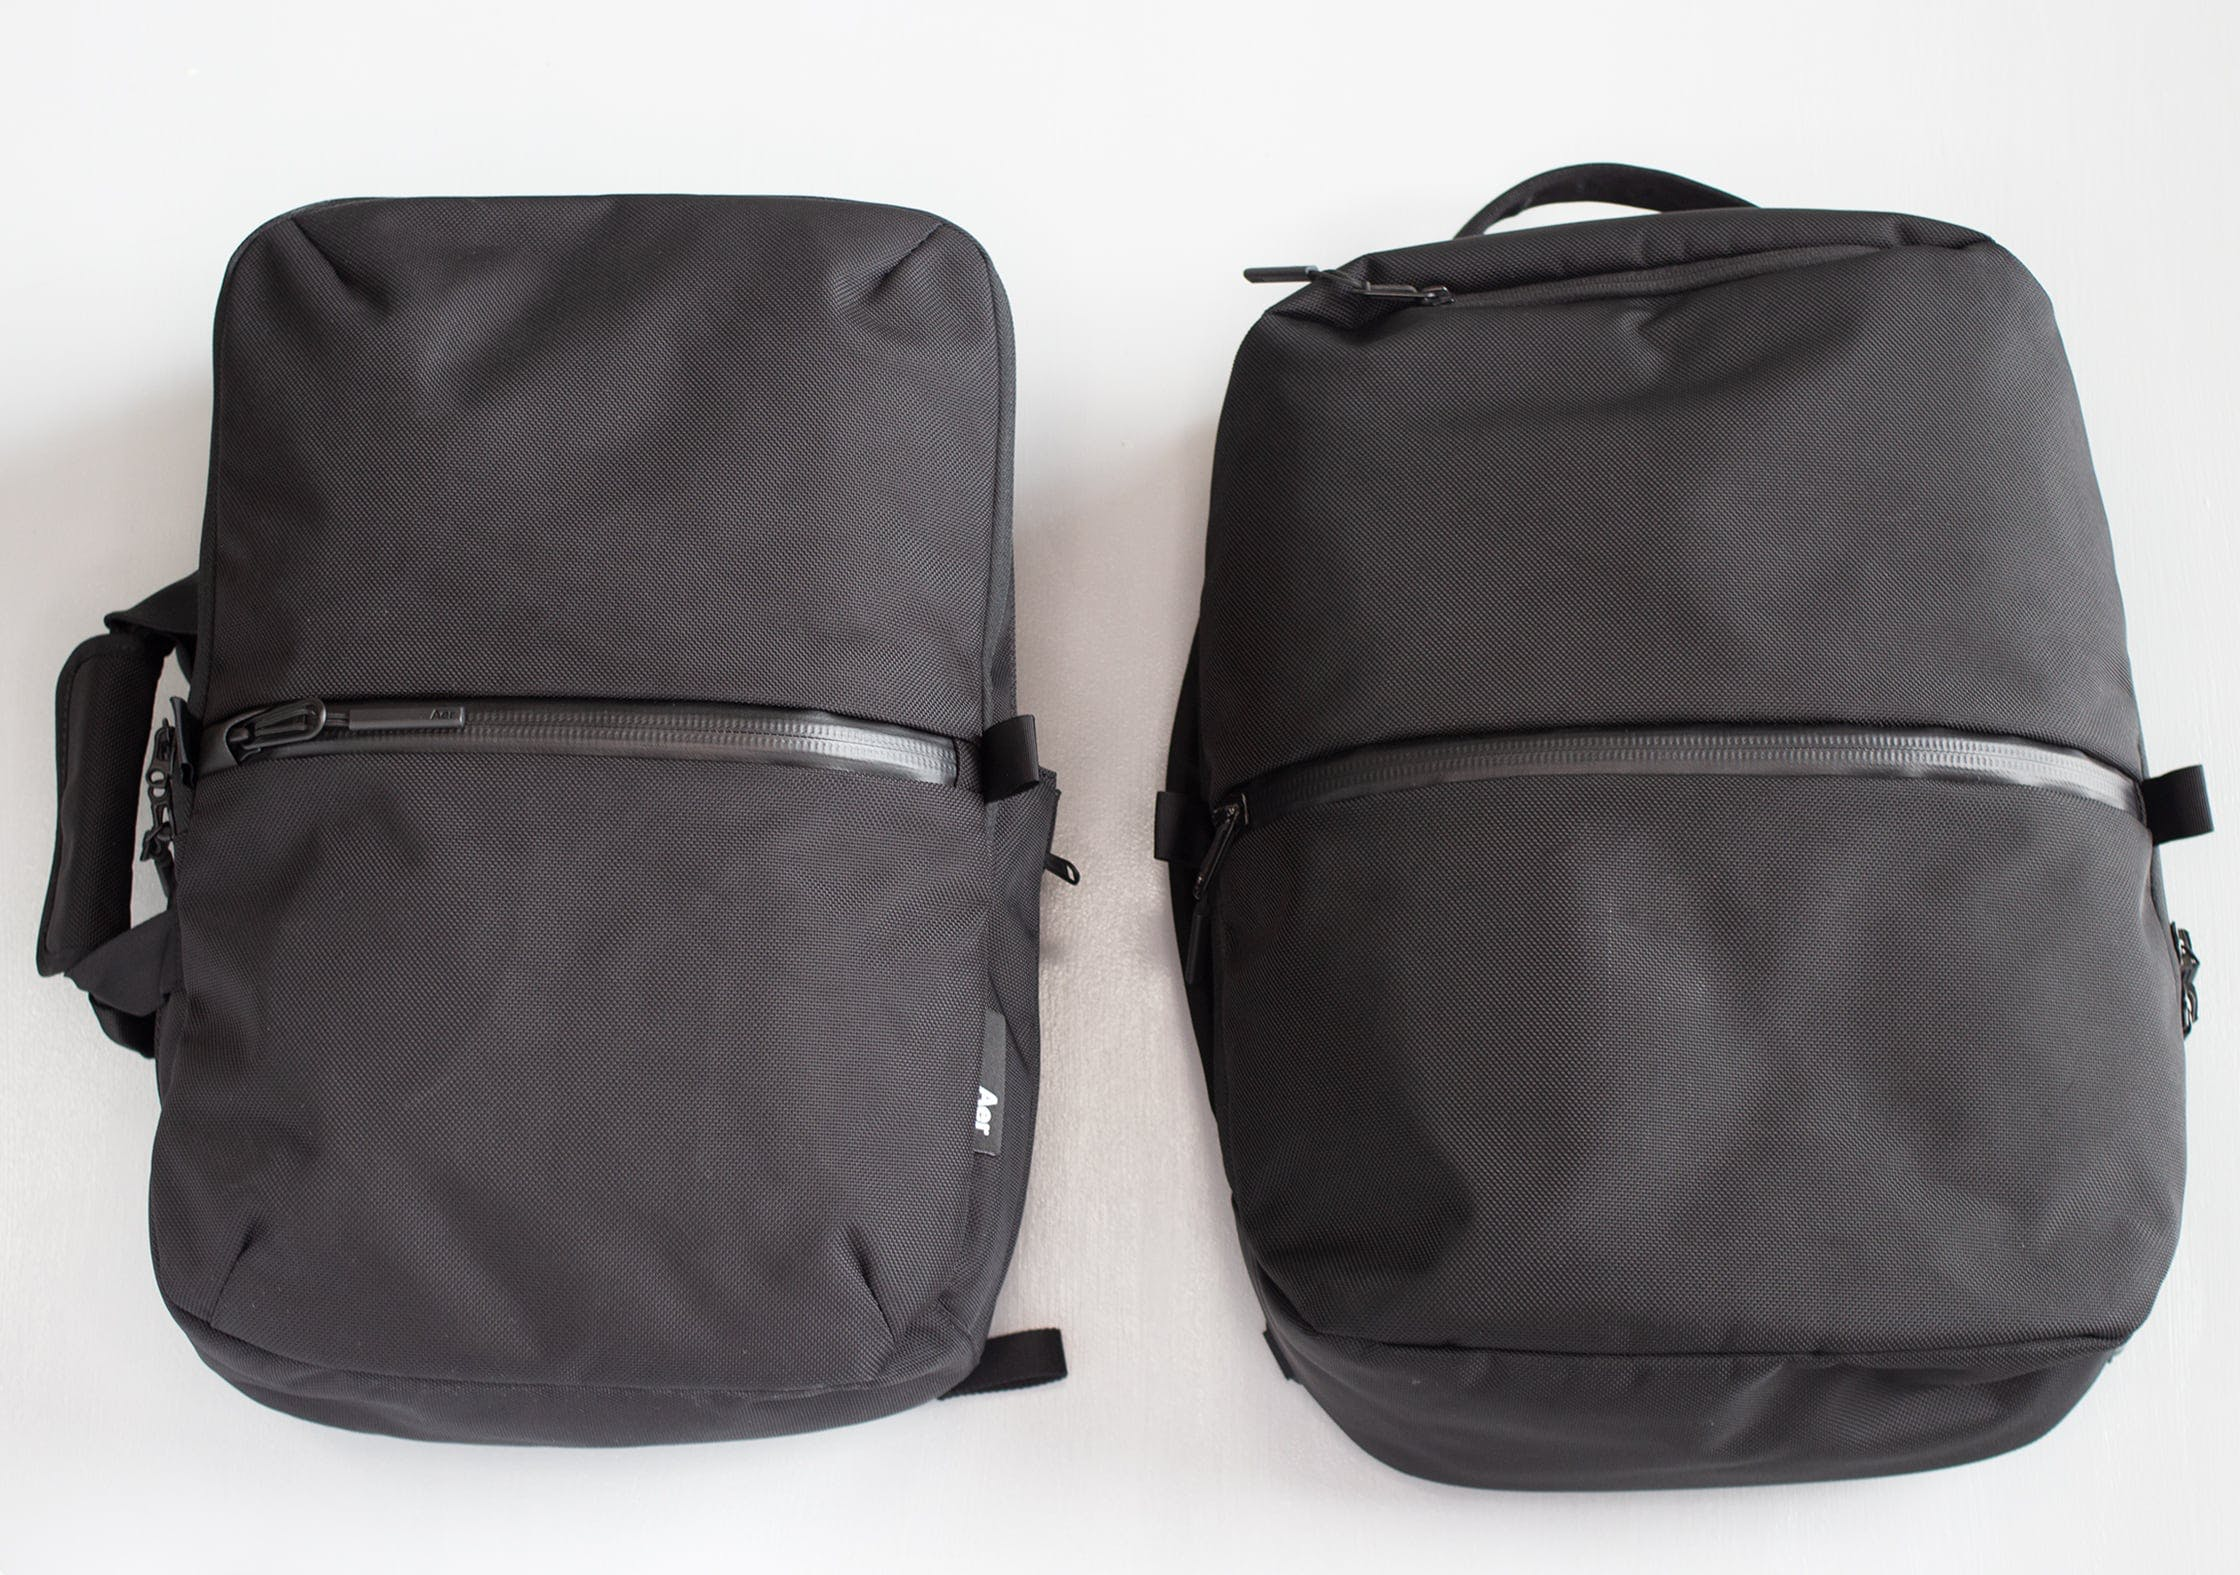 0d0c6a7c9b03 Aer Flight Pack 2 Compared With Flight Pack 1